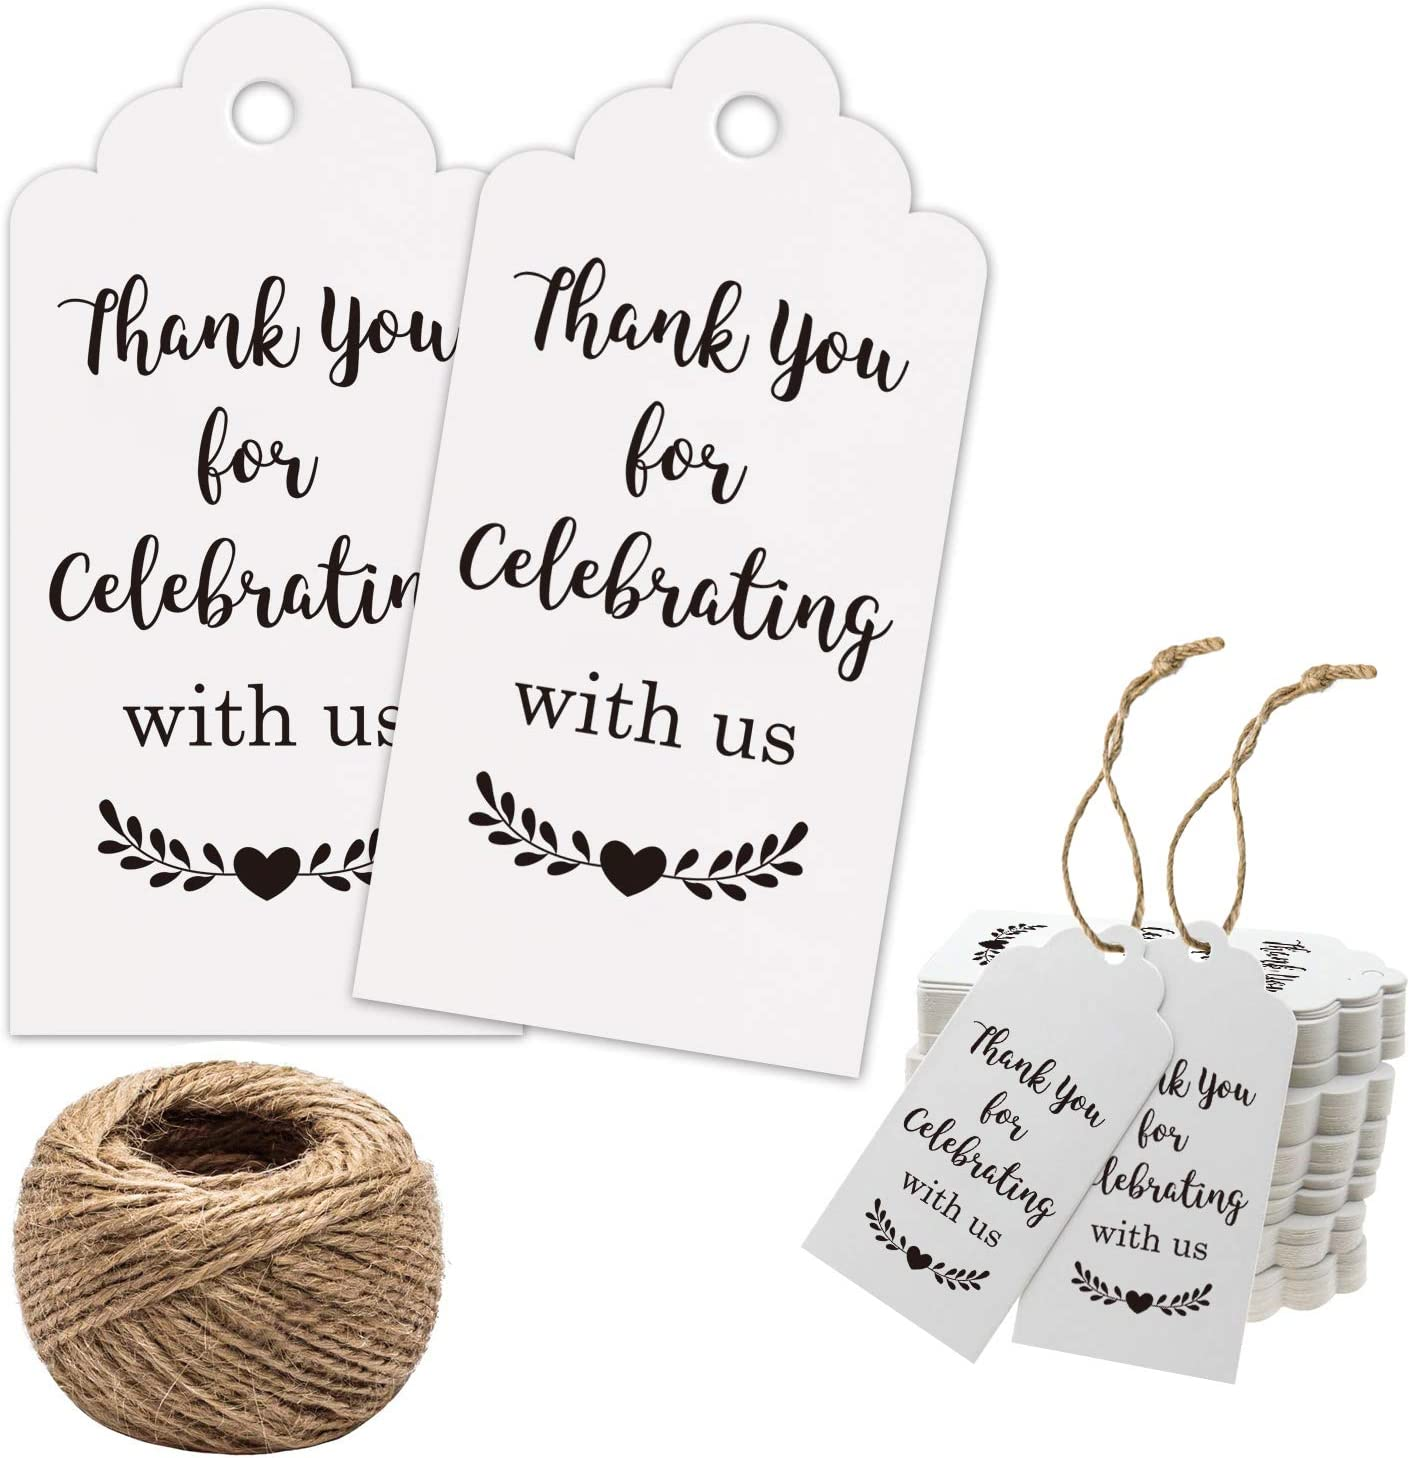 Thank You Tags, Thank You for Celebrating with Us Tags, 100Pcs White Thank You Tags for Wedding Birthday Baby Shower Party Favors, Paper Gift Tags with 100 Feet Jute String